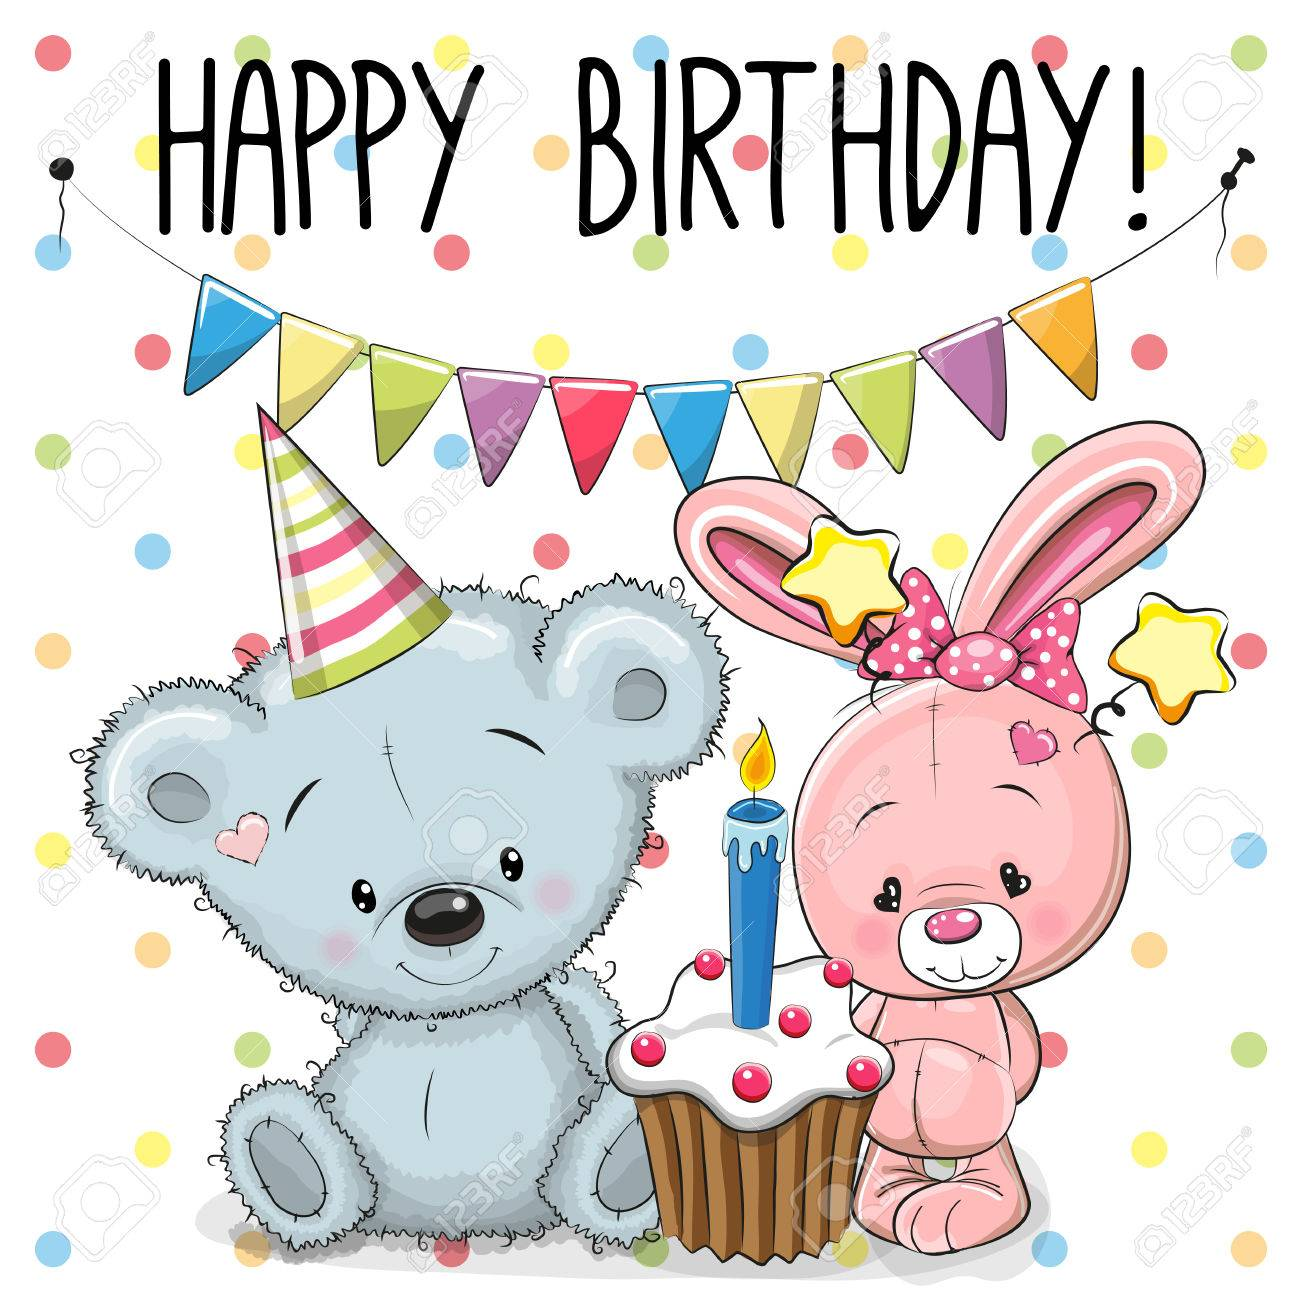 Greeting Birthday Card With Cute Rabbit And Teddy Bear Royalty Free